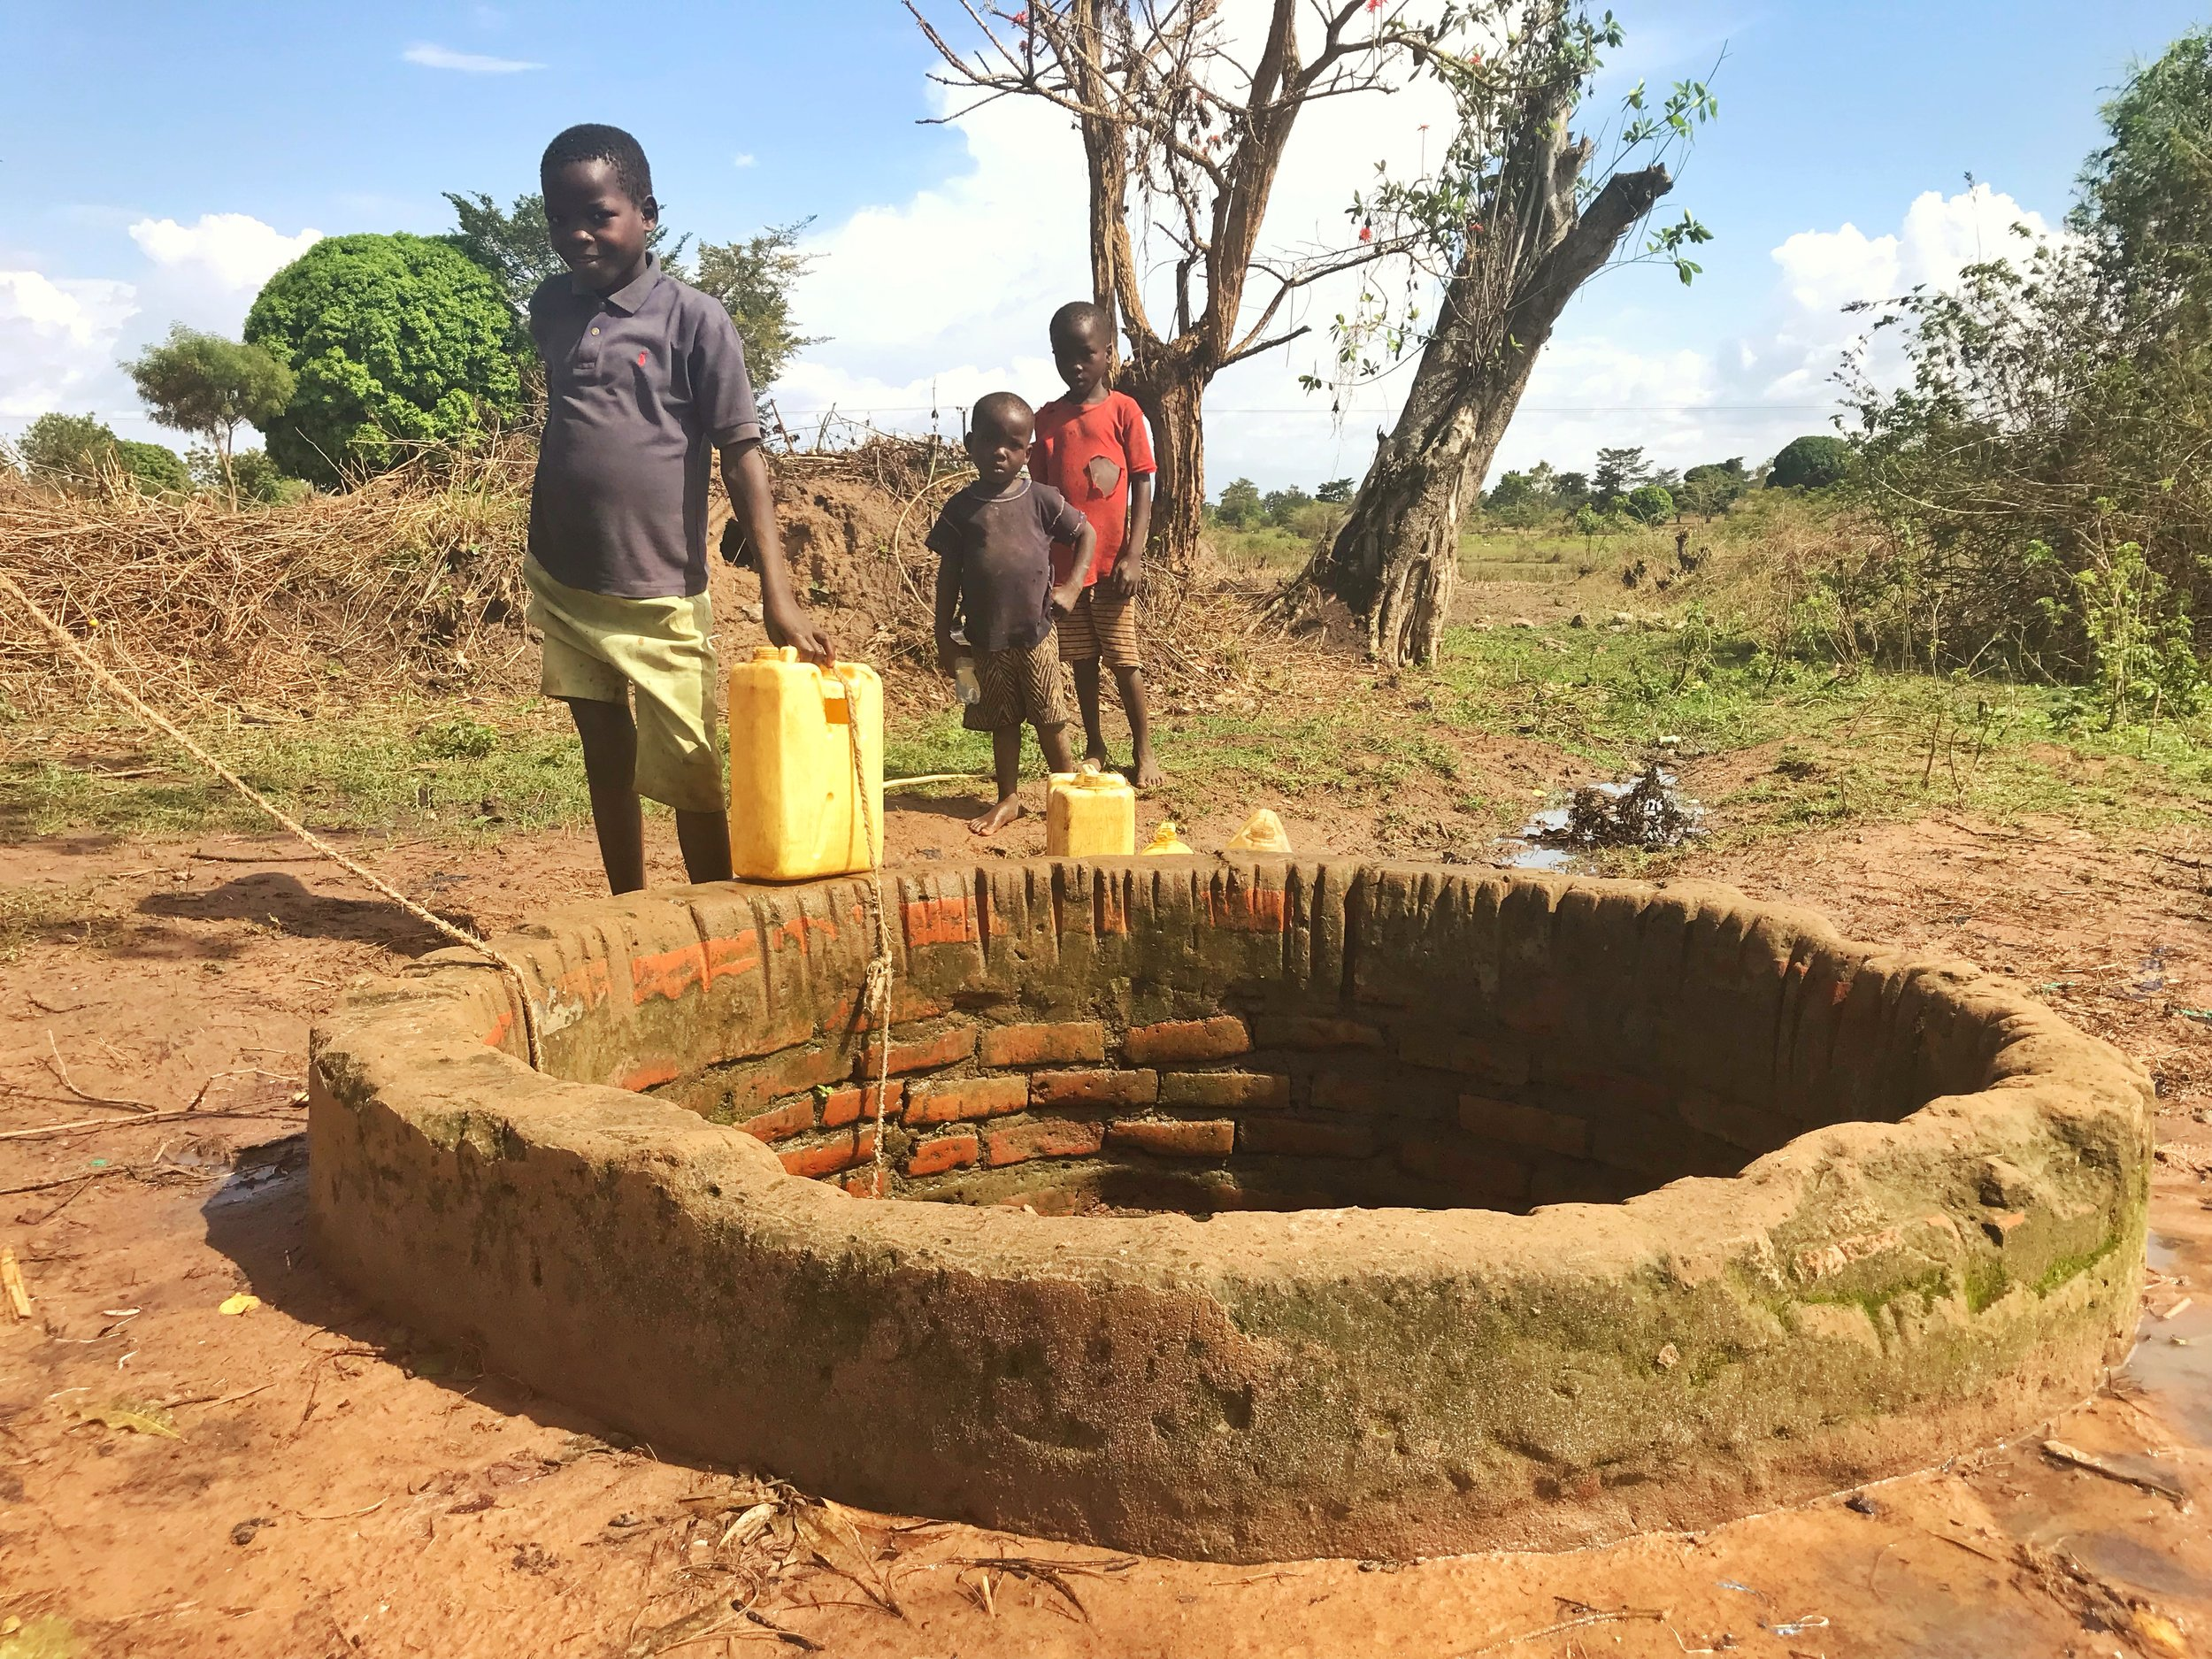 Surface water is retrieved from this old hand dug well in this 1,000+ member community.  many reports of waterborne disease were shared with our team during a visit to this area of uganda.  how would you solve this problem?